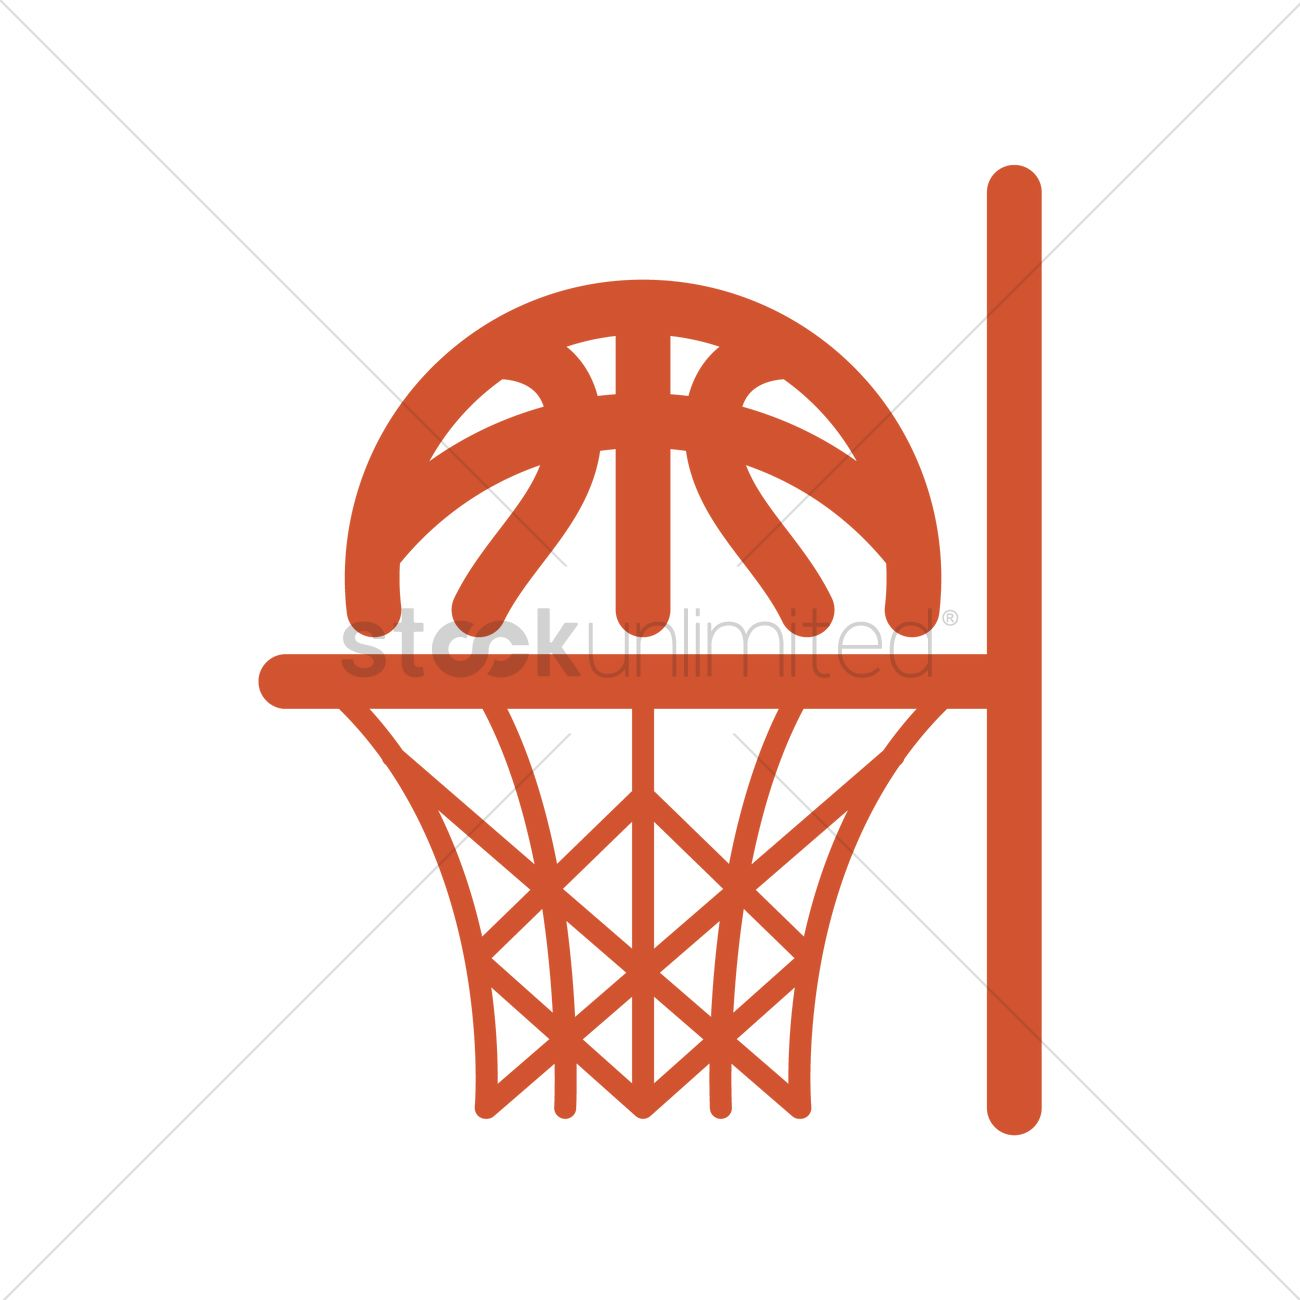 http://images.cdn2.stockunlimited.net/preview1300/basketball-and-backboard-with-hoop-net_1993112.jpg Basketball